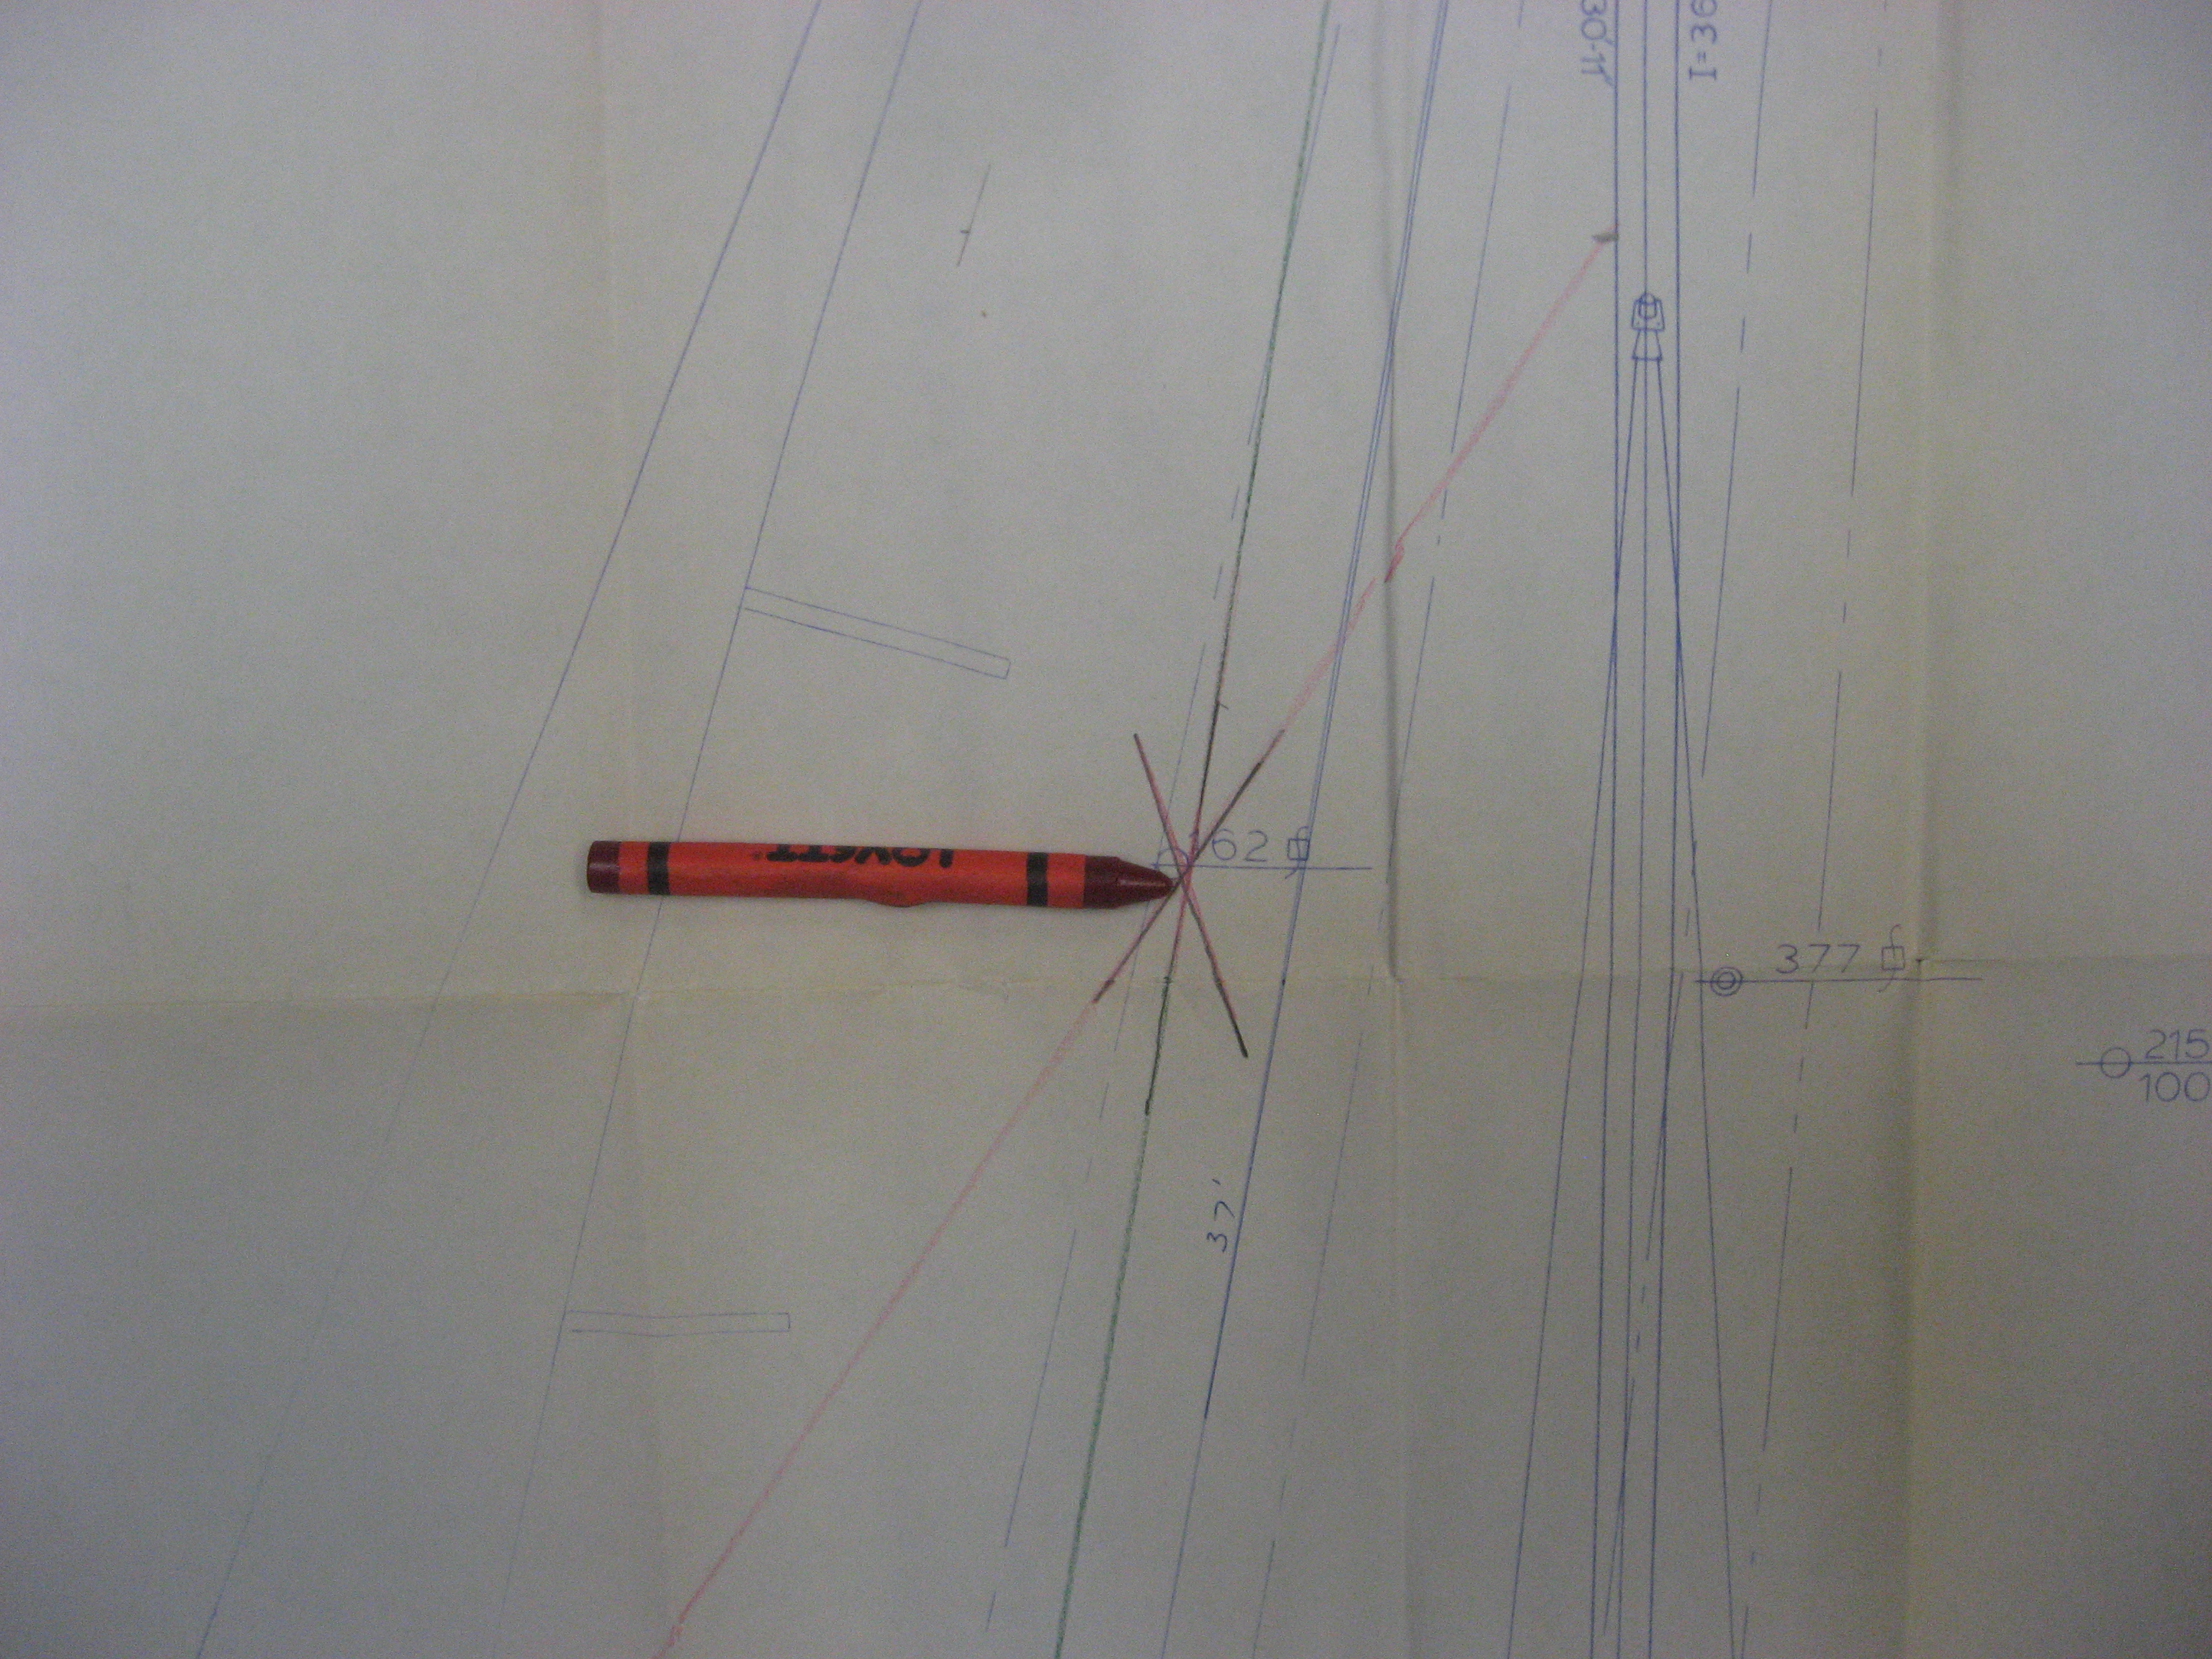 the intersections of the pencil lines is the Center of Effort of this sail